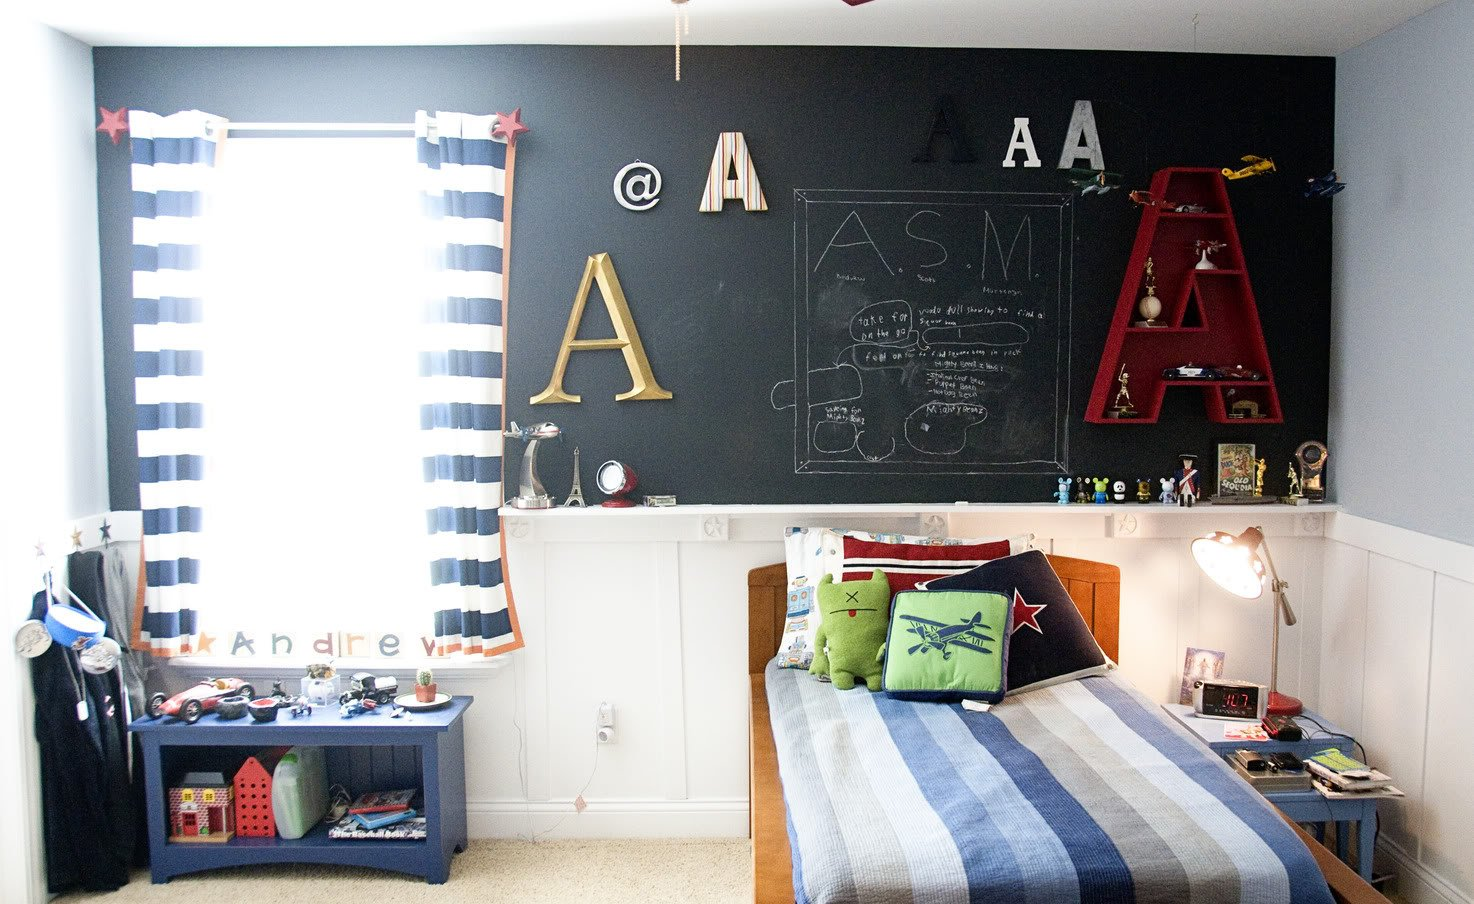 Cool bedroom ideas 12 boy rooms today 39 s creative life for Cool small bedroom ideas